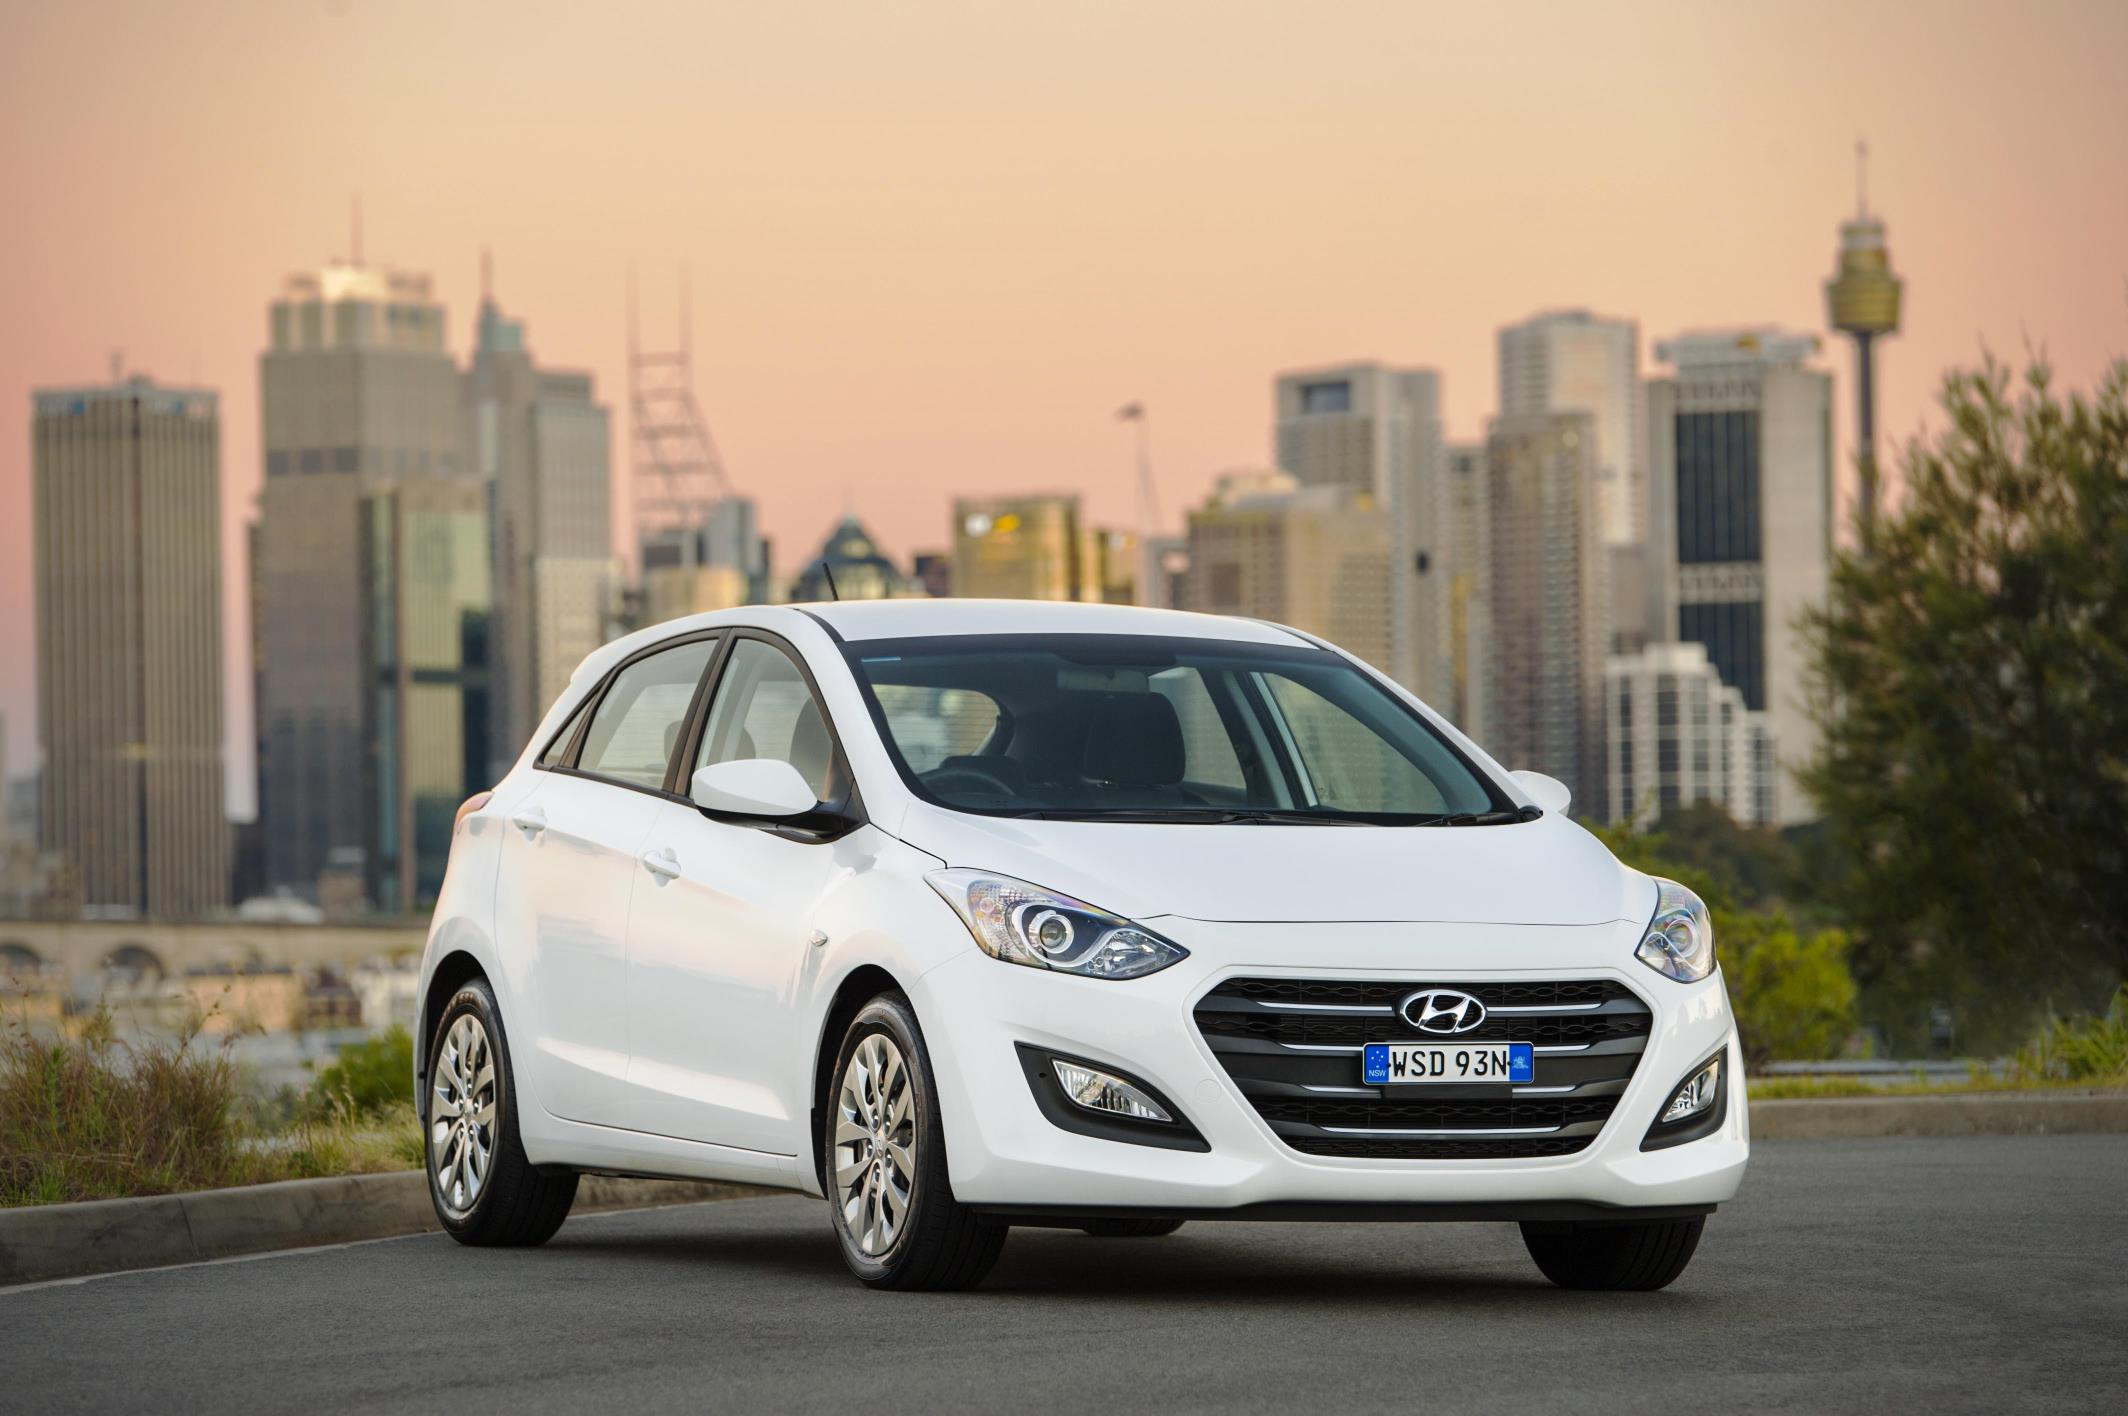 Redbook Used Car Luxury Hyundai Scoops Two Categories at Used Cars Awards – Afma